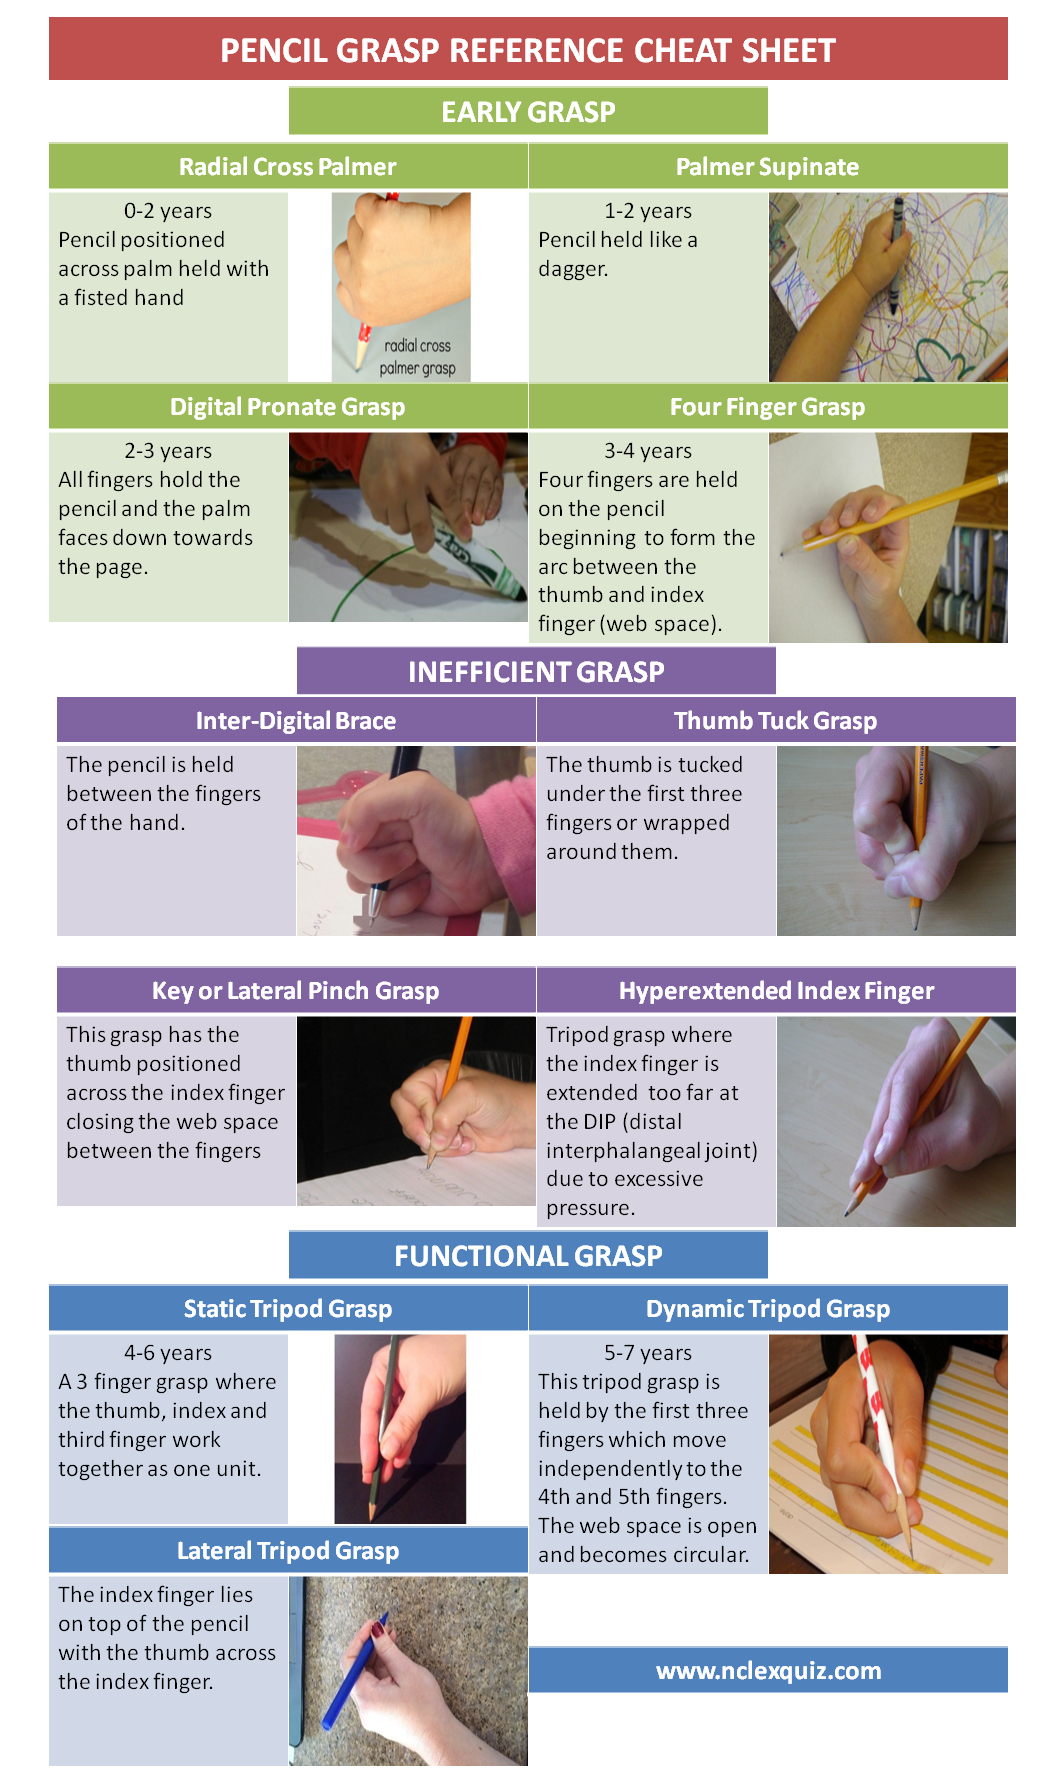 Pencil Grasp Reference Cheat Sheet